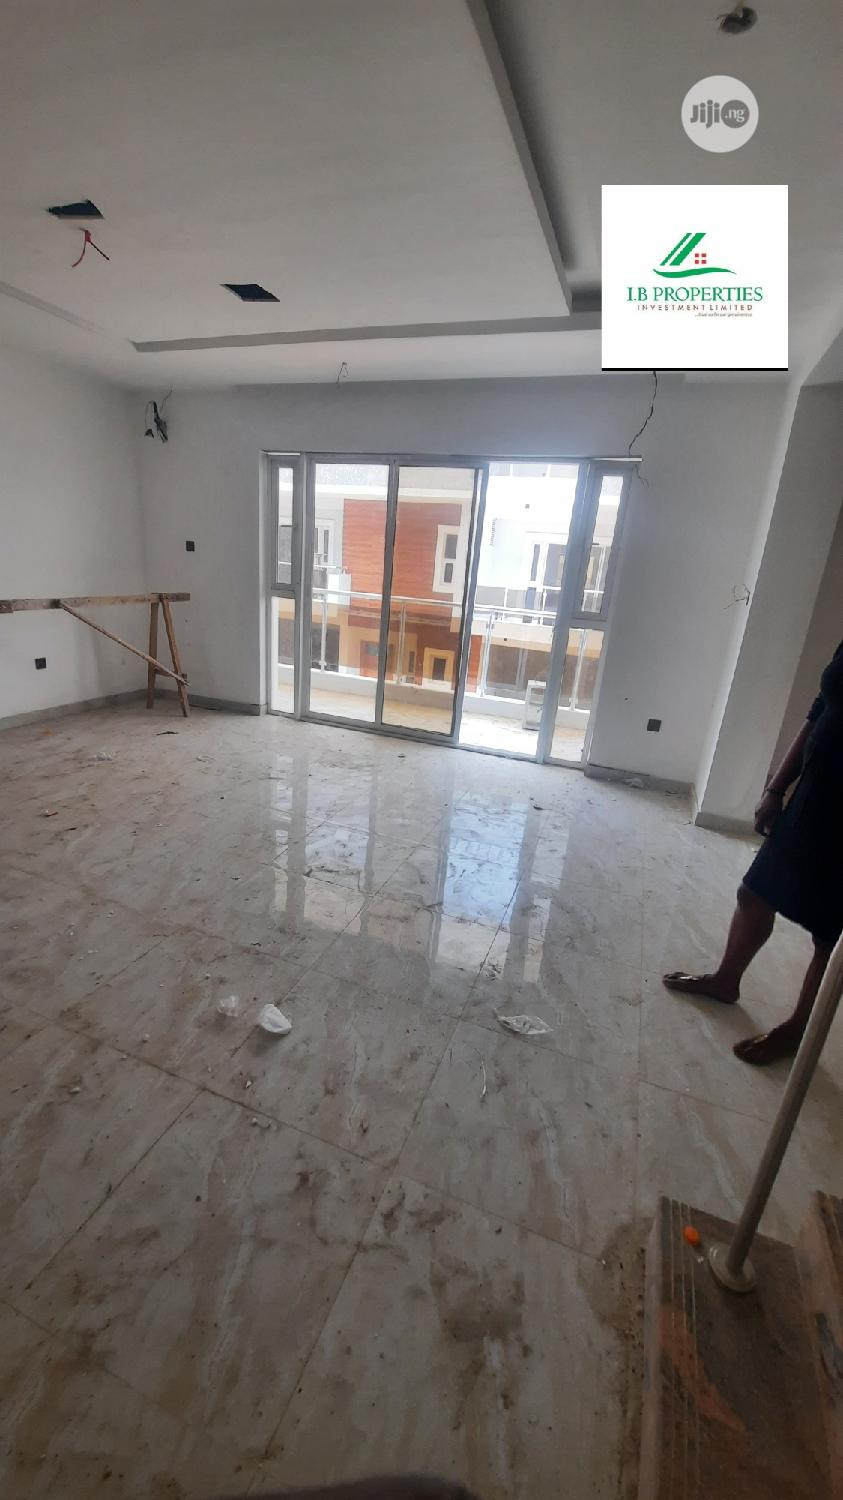 Newly Built 4 Bedroom Terrace Duplex With BQ, Swimming Pool   Houses & Apartments For Sale for sale in Lekki Phase 1, Lekki, Nigeria